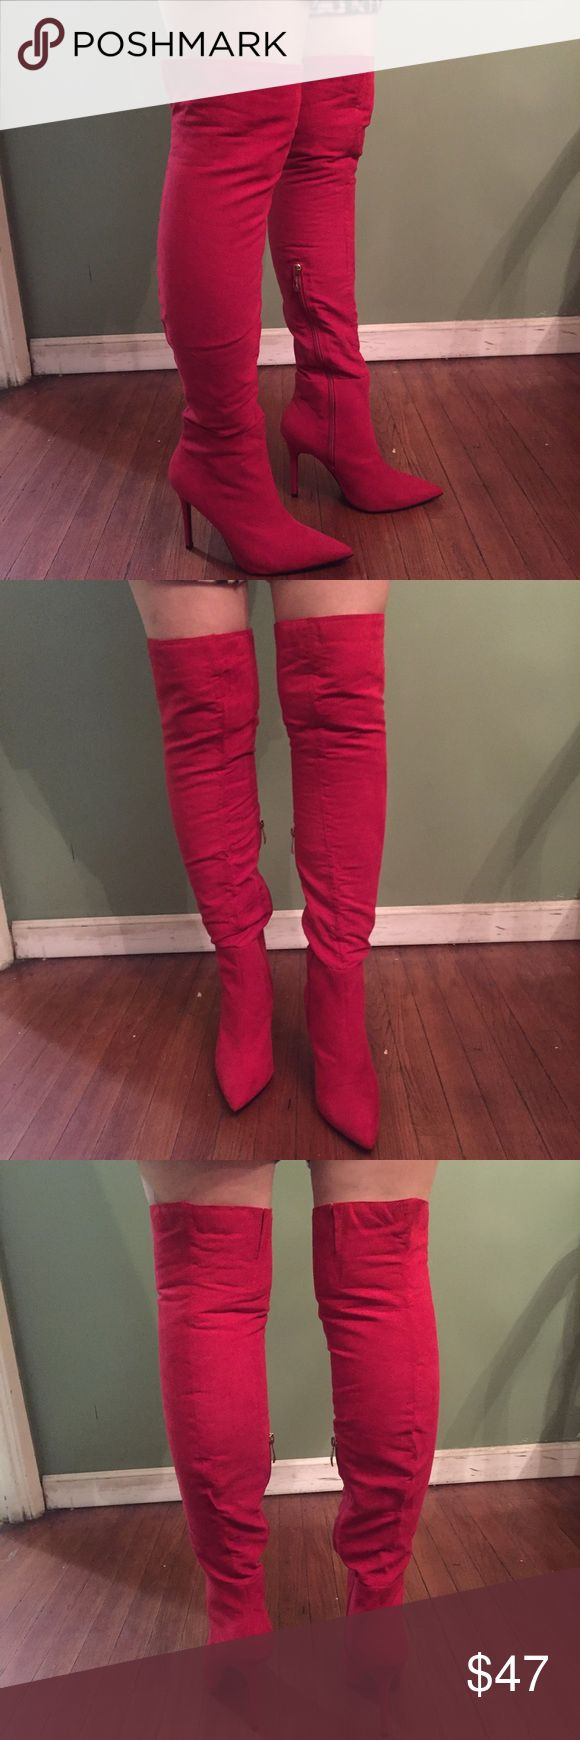 💋Red boots💋 💋All red knee high heeled  boots & new never used  🎉 New without tag🎉 🙀Look through my closet to pair with this item& bundle to save!💕🙀 ❣️Make An Offer!❣️ WINDSOR Shoes Over the Knee Boots